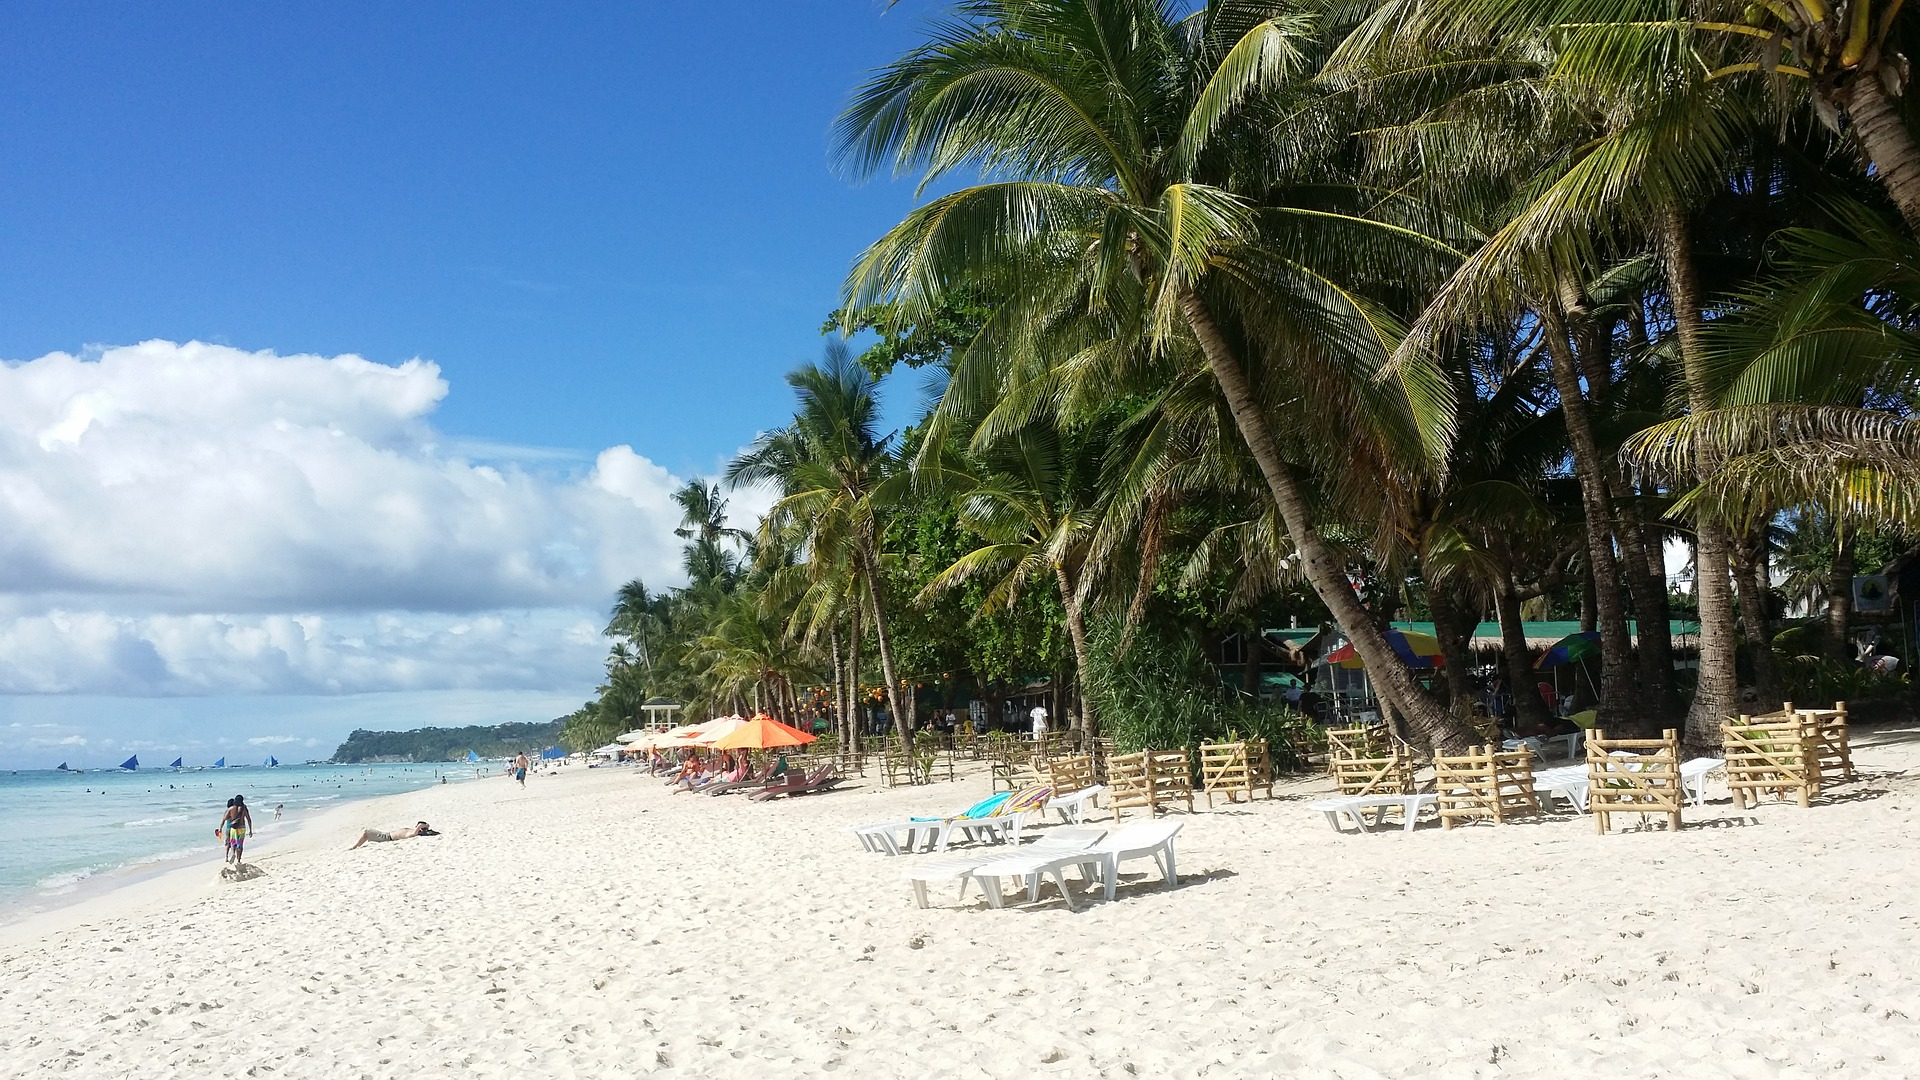 The island of Boracay